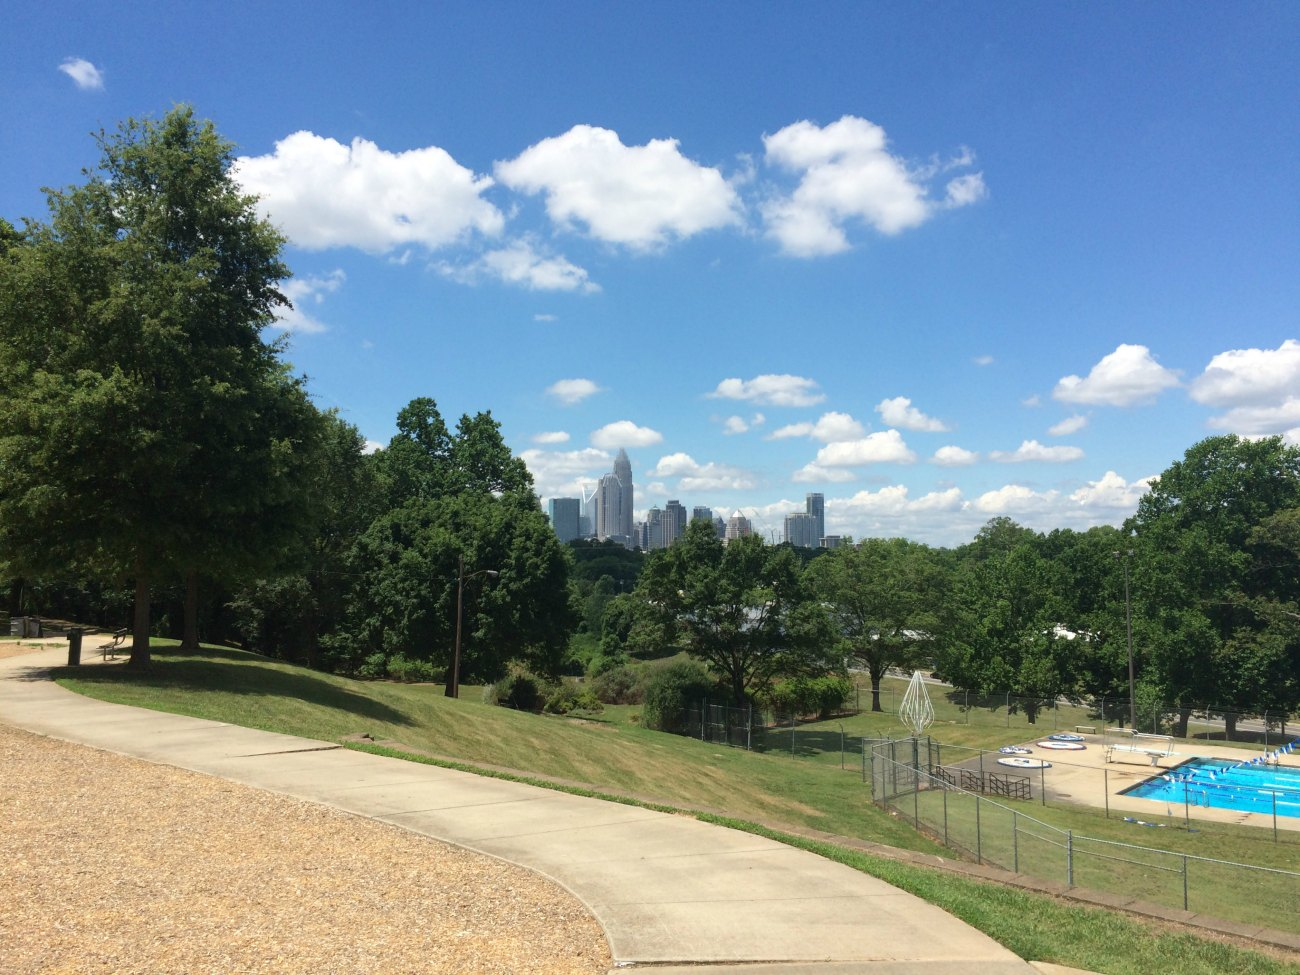 Little Sugar Creek Greenway Bike Bar Crawl: 6 miles, 4 ...